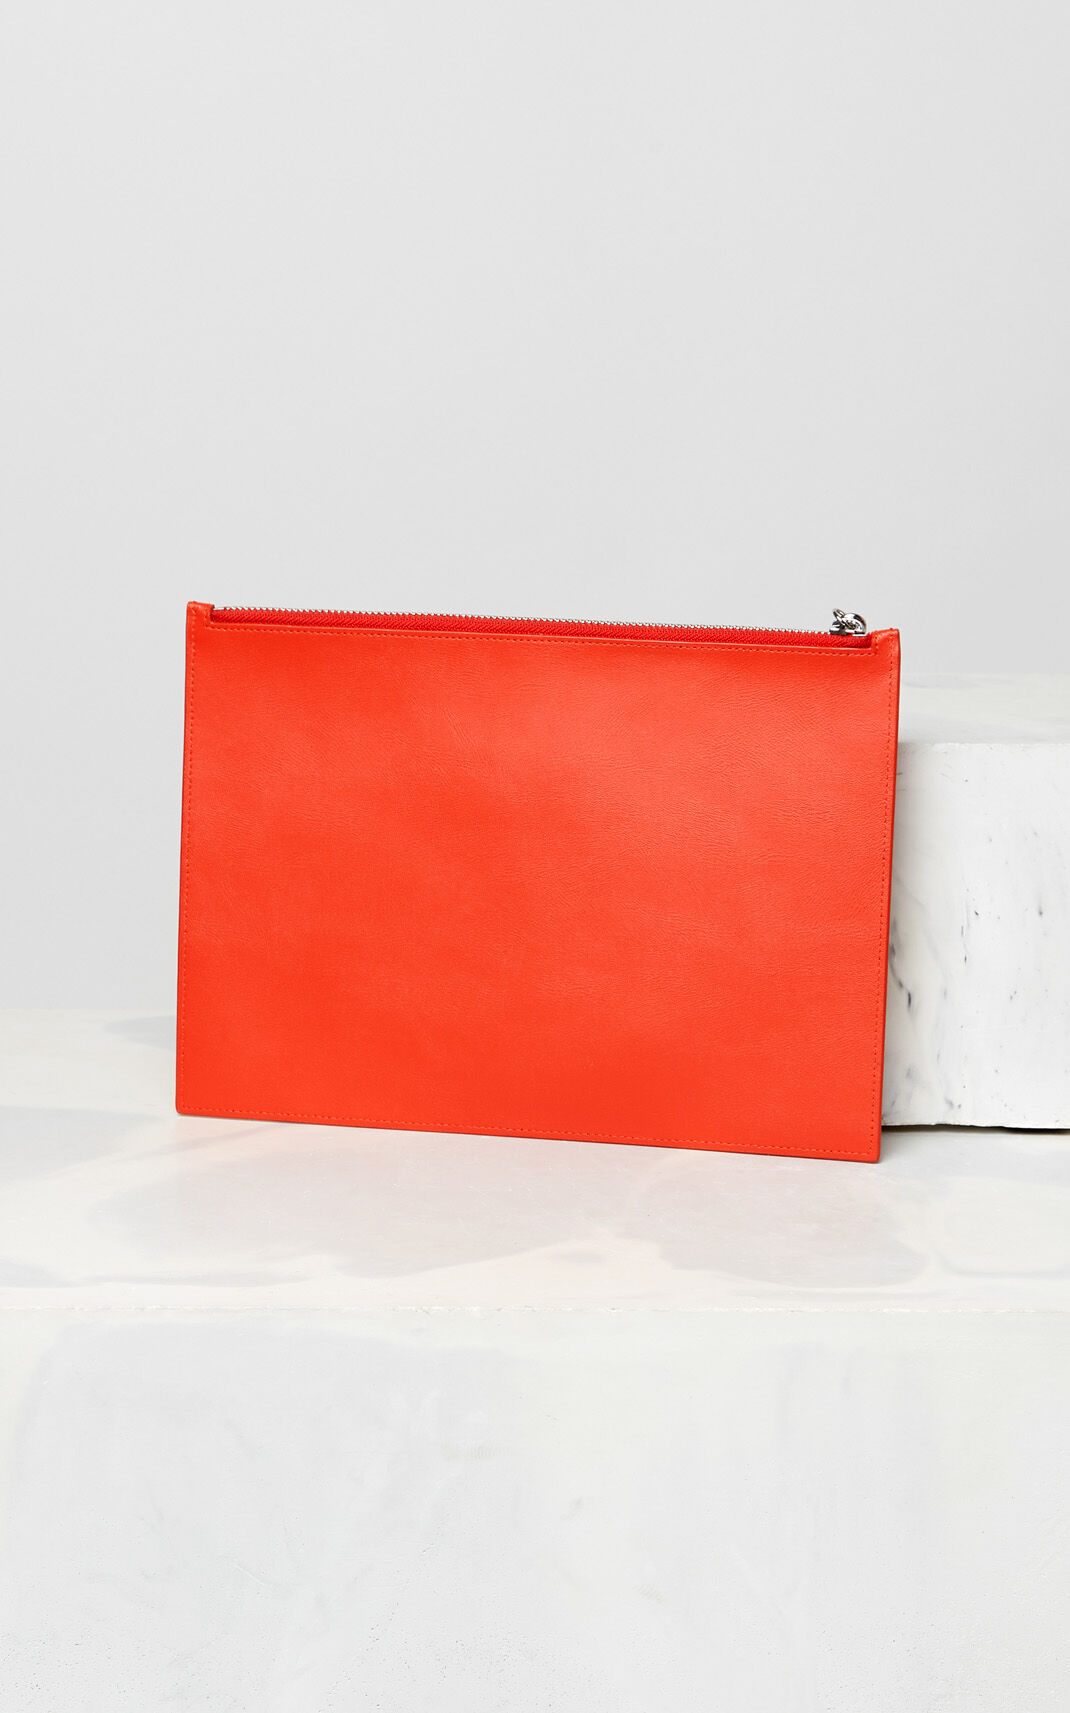 MEDIUM RED KENZO colorblock clutch for unisex